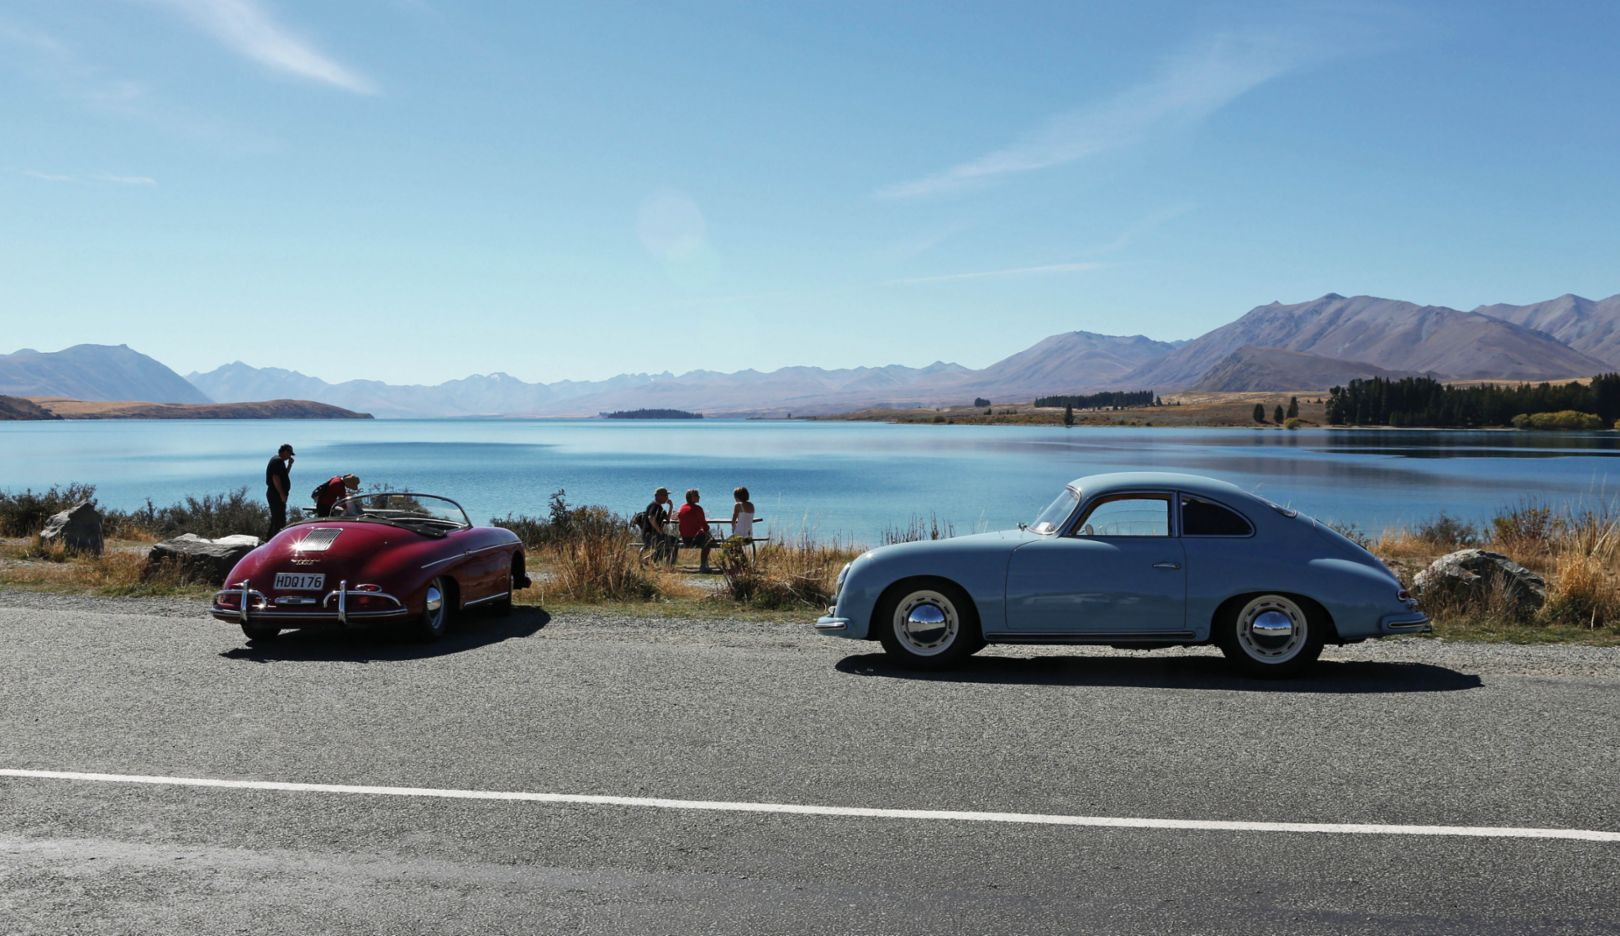 356 B Roadster, 356 A Super Coupé, 2020, Porsche AG